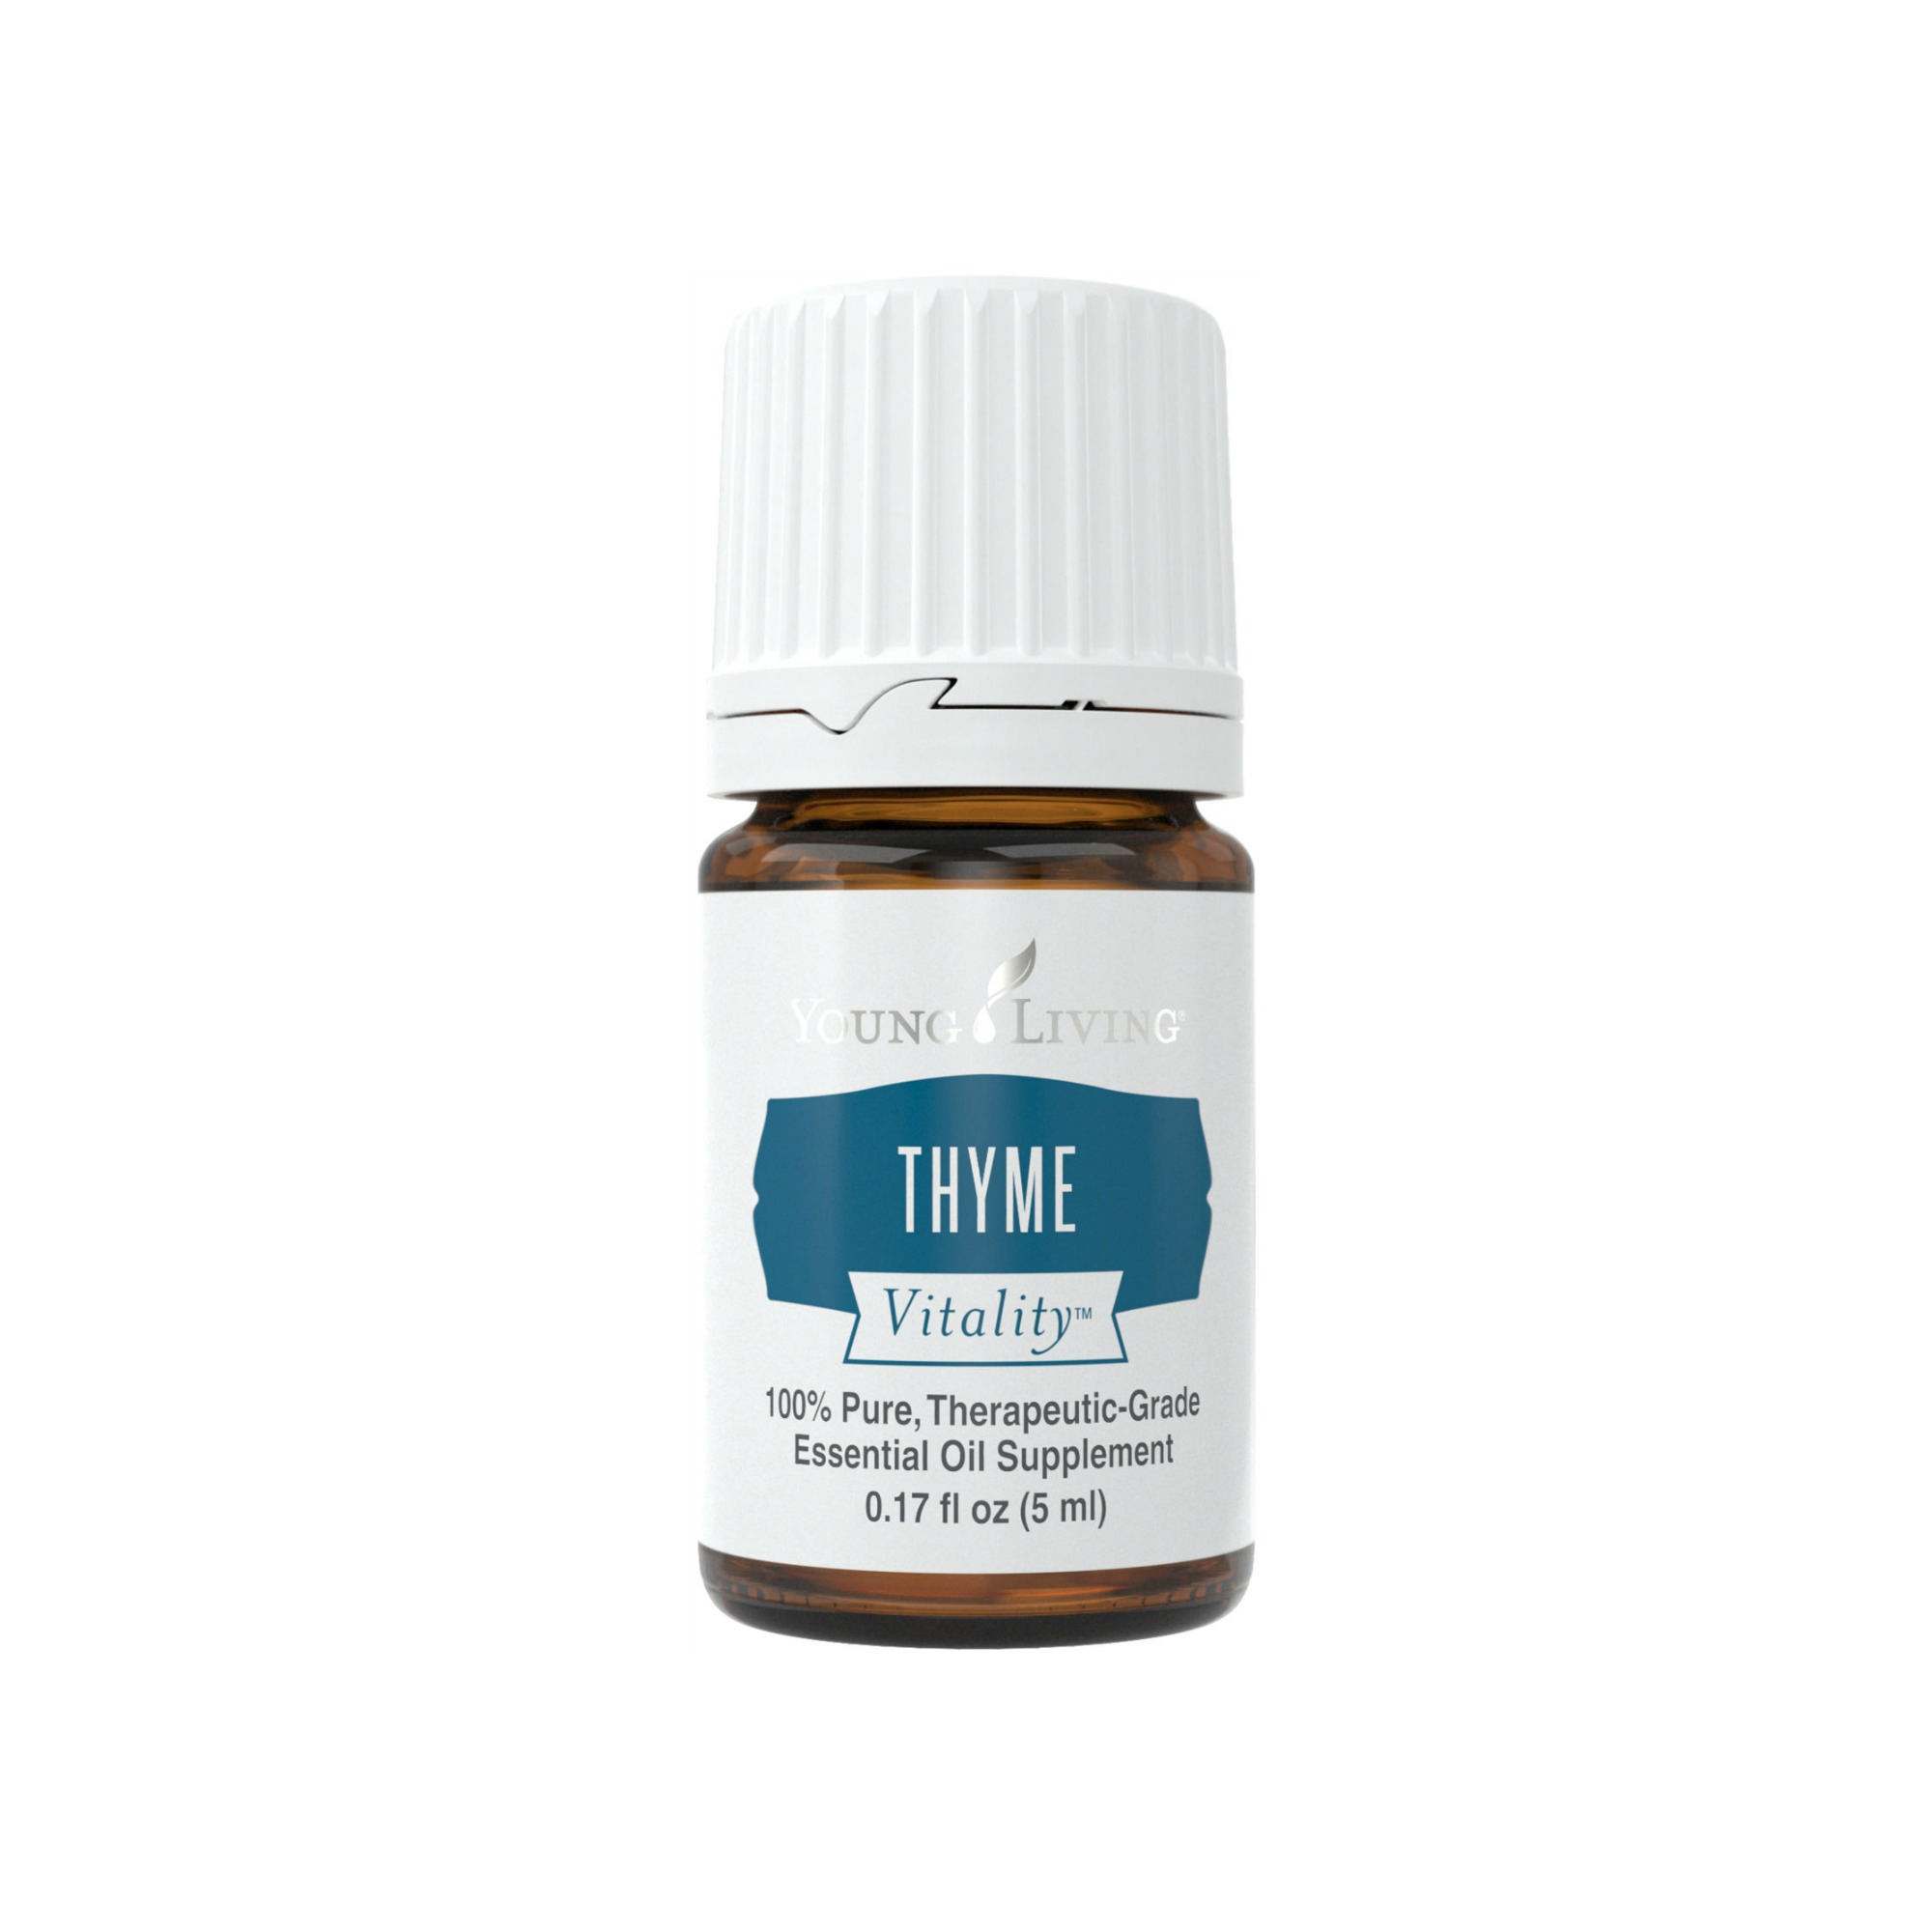 THYME VITALITY    Thyme Vitality™ essential oil is the concentrated distillation of Thyme, a classic and beloved kitchen herb. Thyme Vitality oil can be used in place of the dried spice in your favorite dishes and is always easy to keep on hand. Thyme can be used in all kinds of cooking recipes and dishes made around the world.   Click here   to learn more about this product.